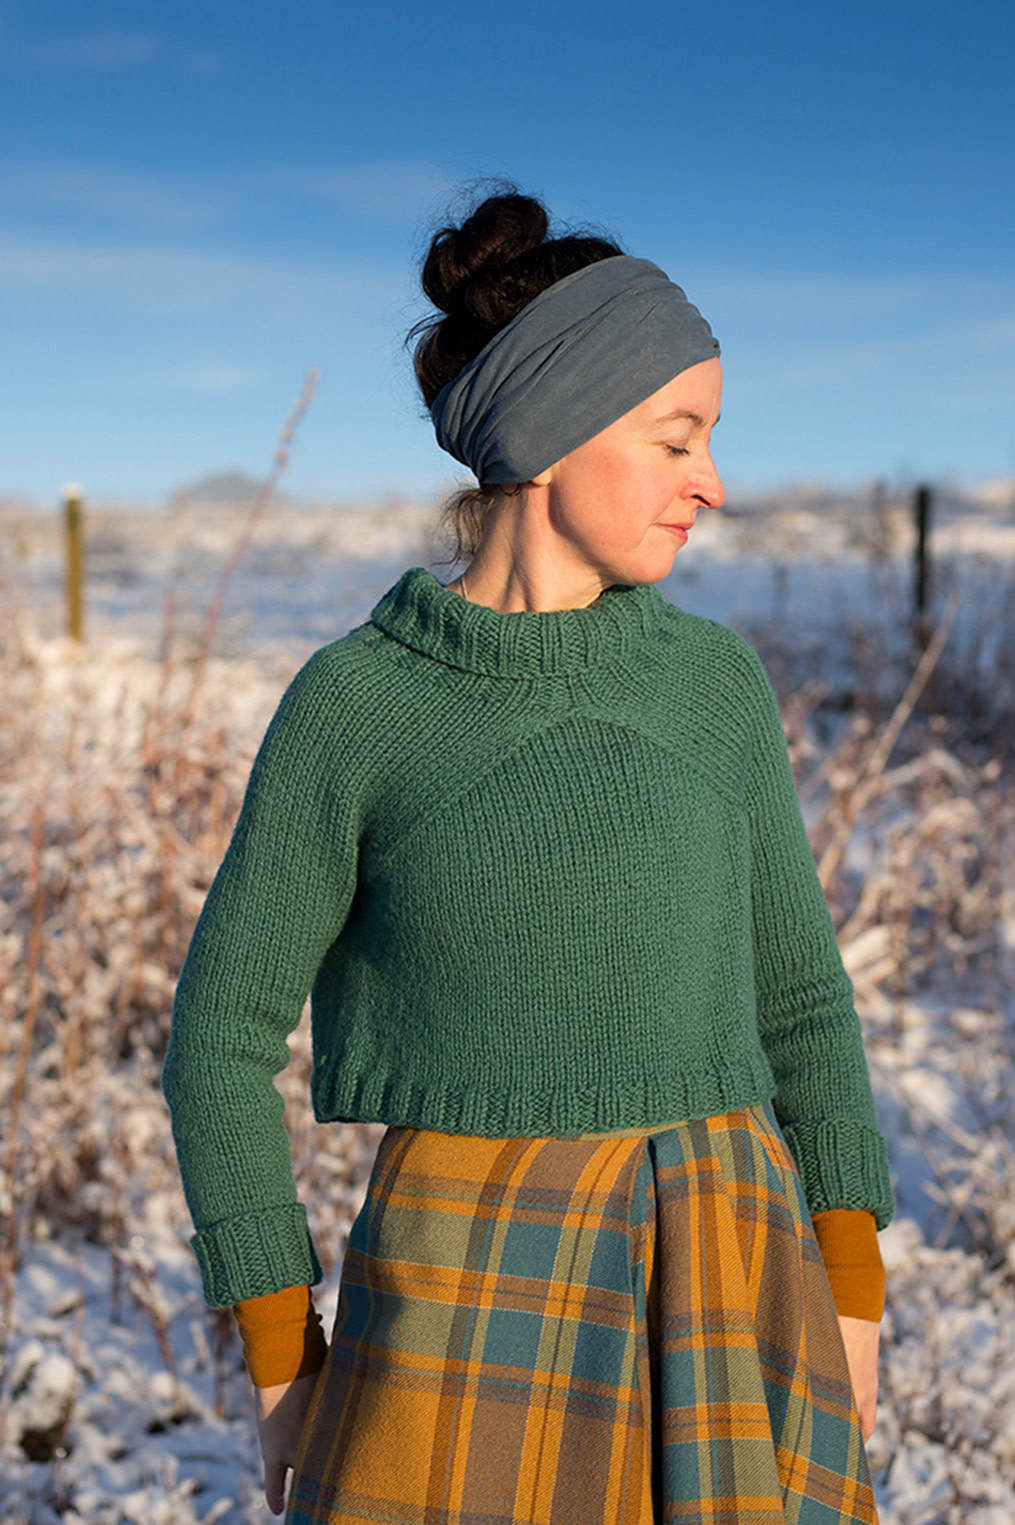 Carbeth Sweater/Cardigan Class, Thursday, February 27, March 12, 19, April 2;  6:00-8:00PM